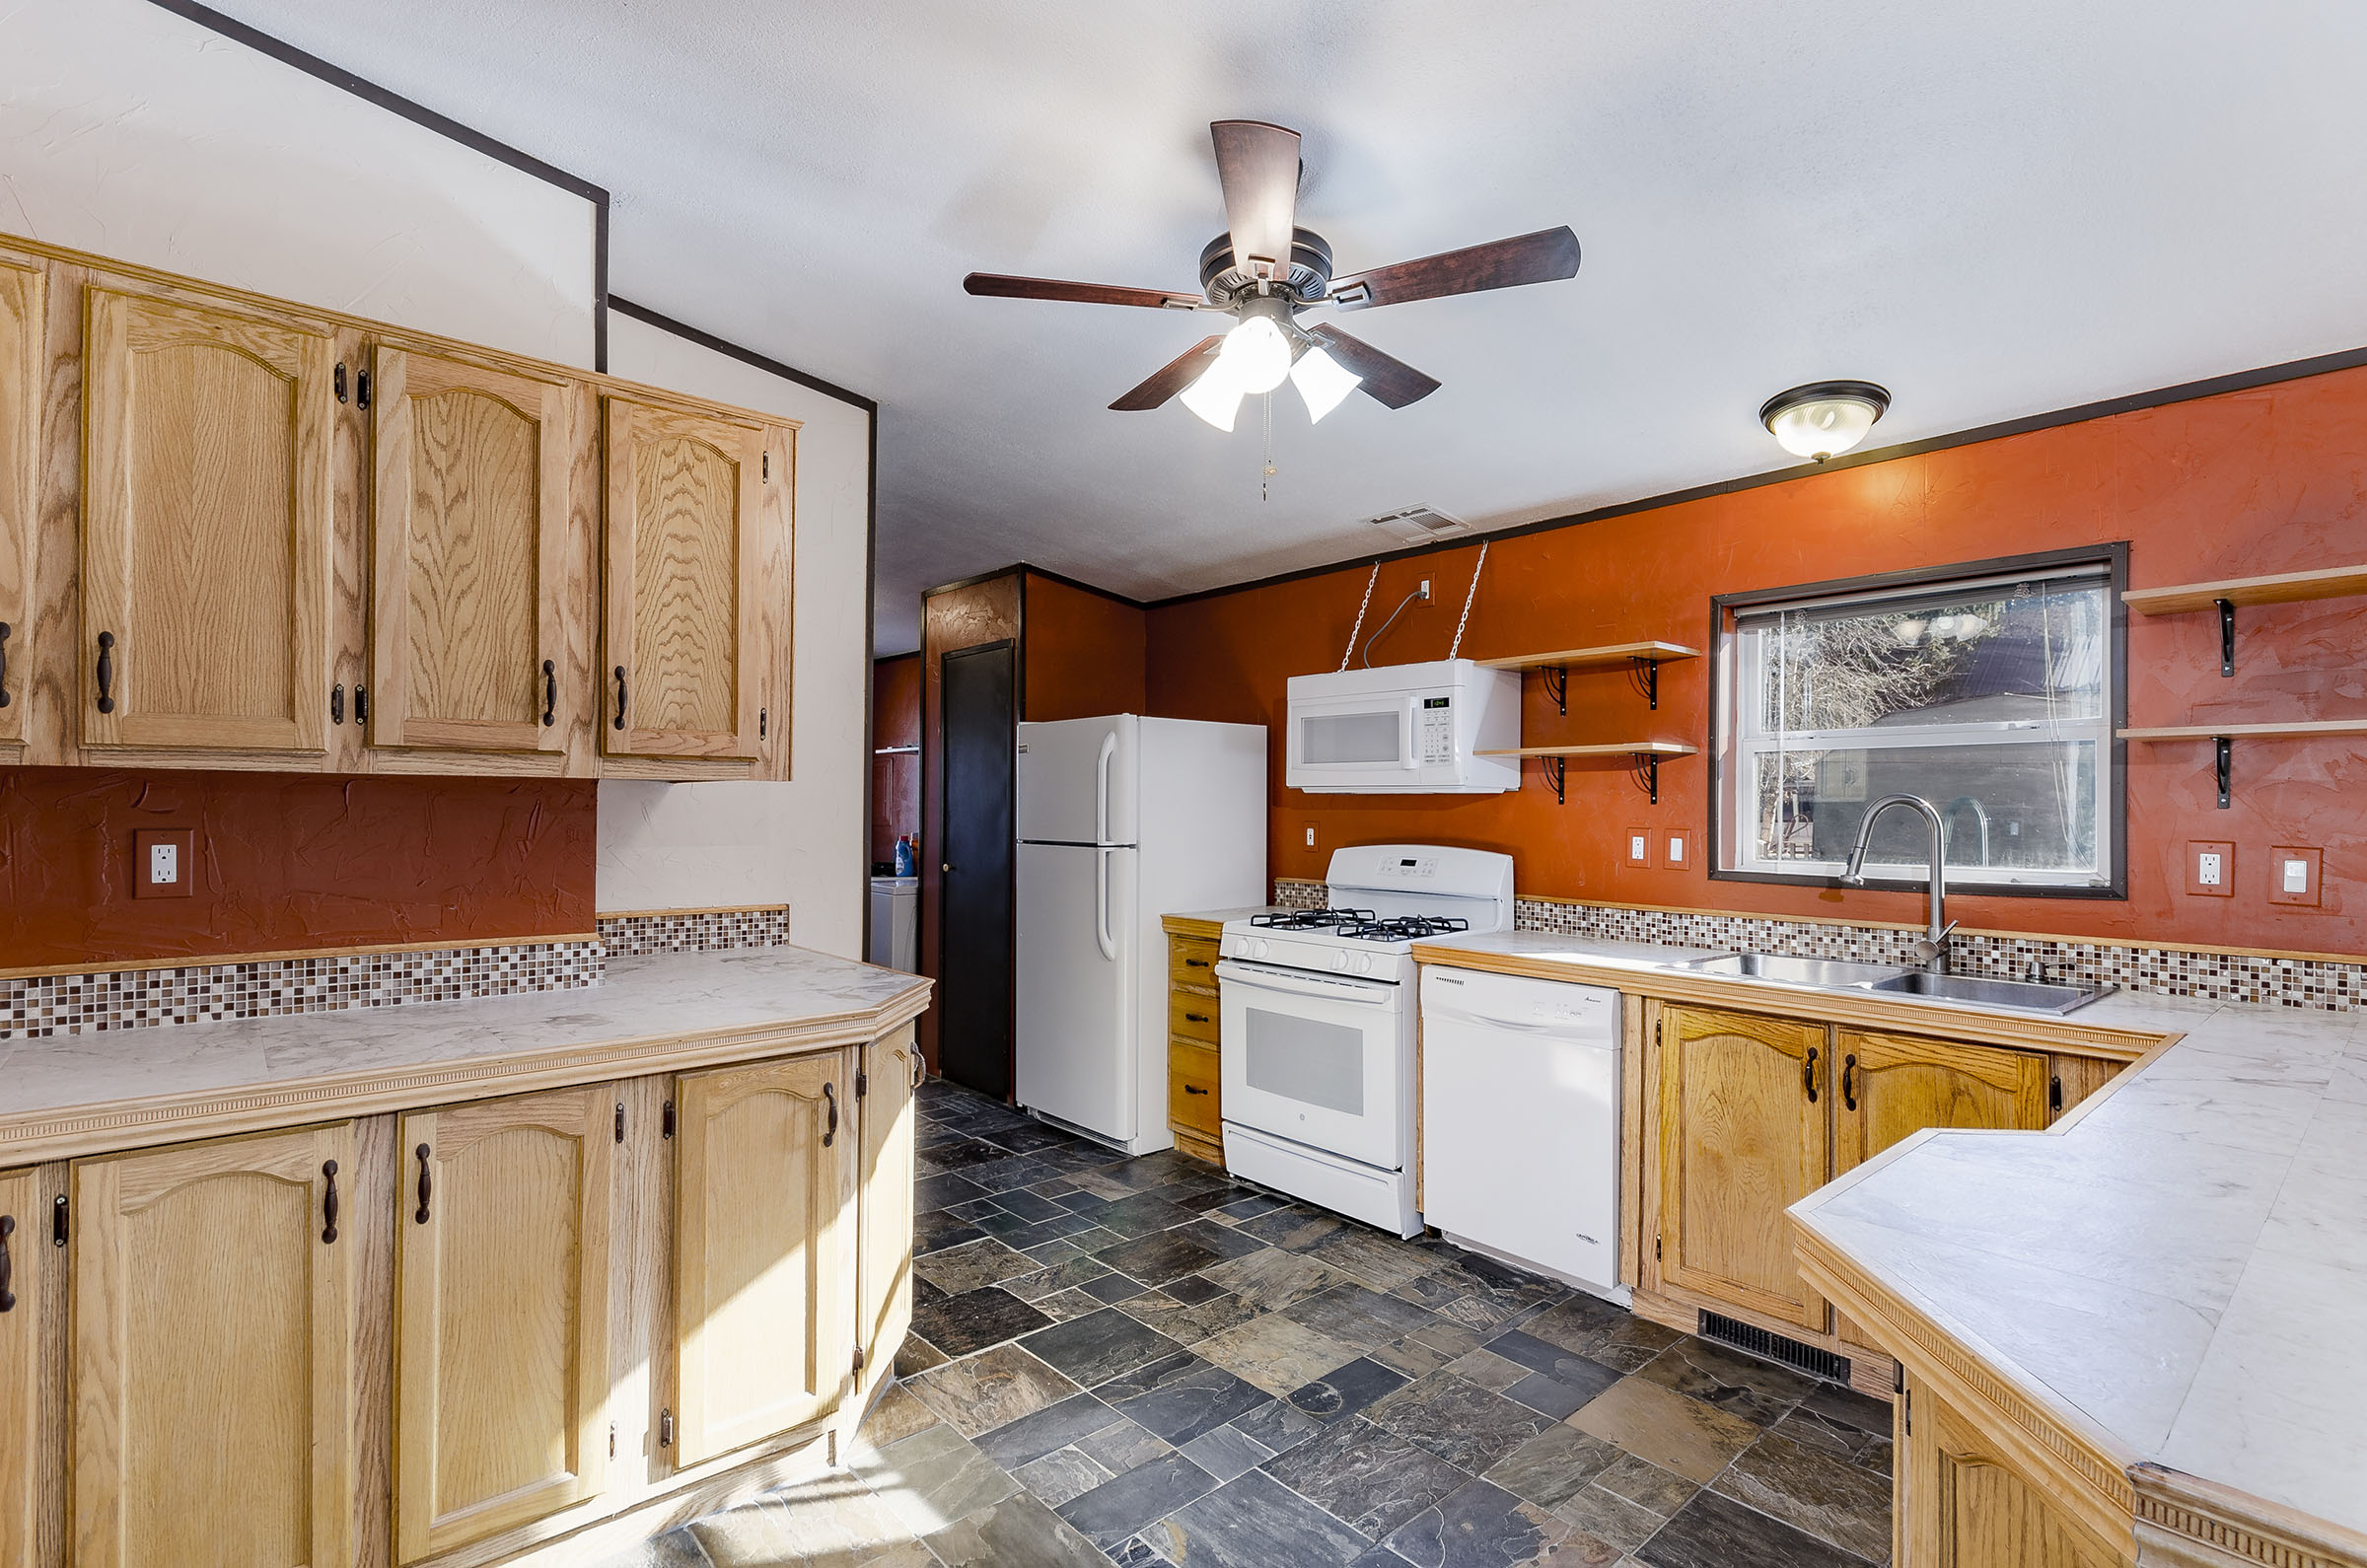 Single Family Home for Sale at Remodeled Home in Oak Creek 212 Moffatt Ave Oak Creek, Colorado, 80467 United States